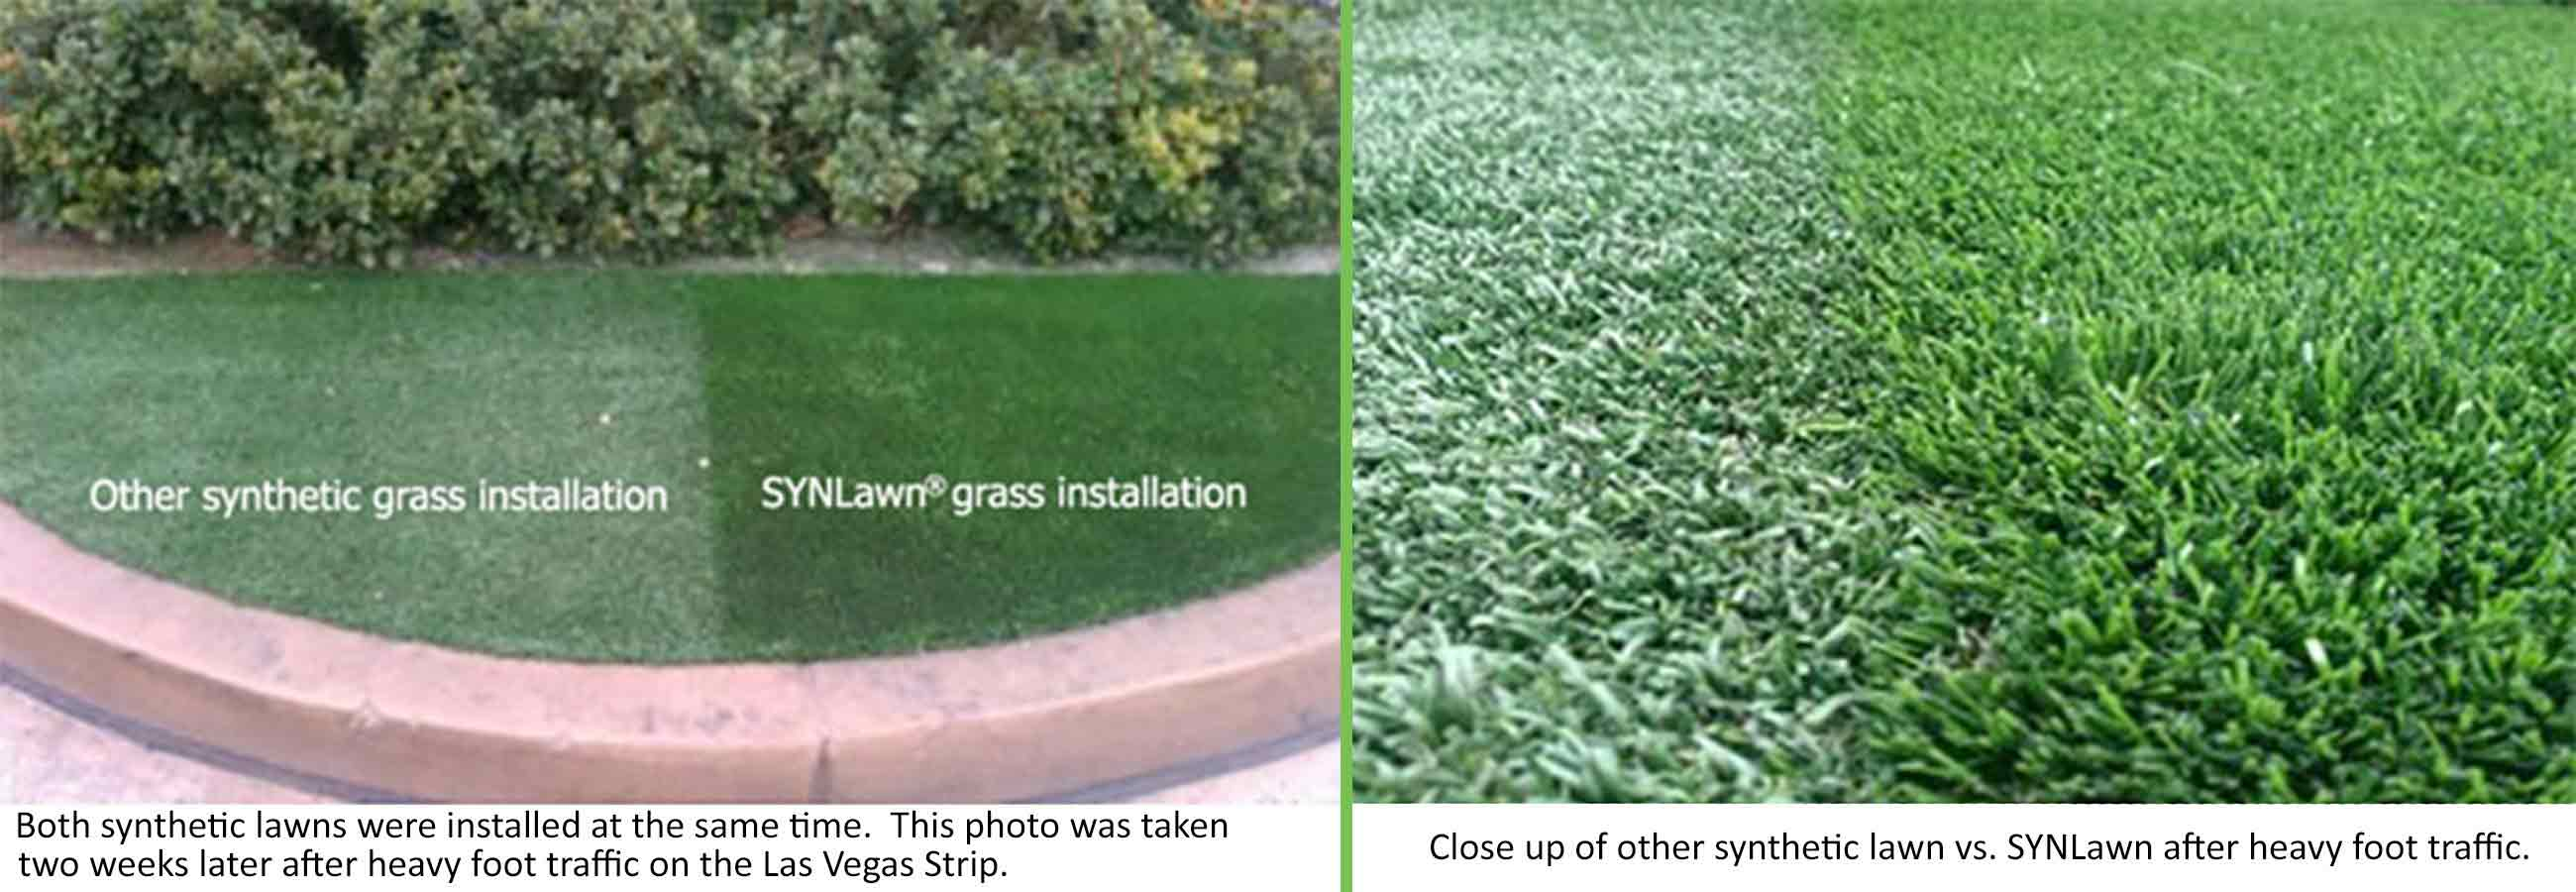 SYNLawn grass installation vs. Other synthetic grass installation